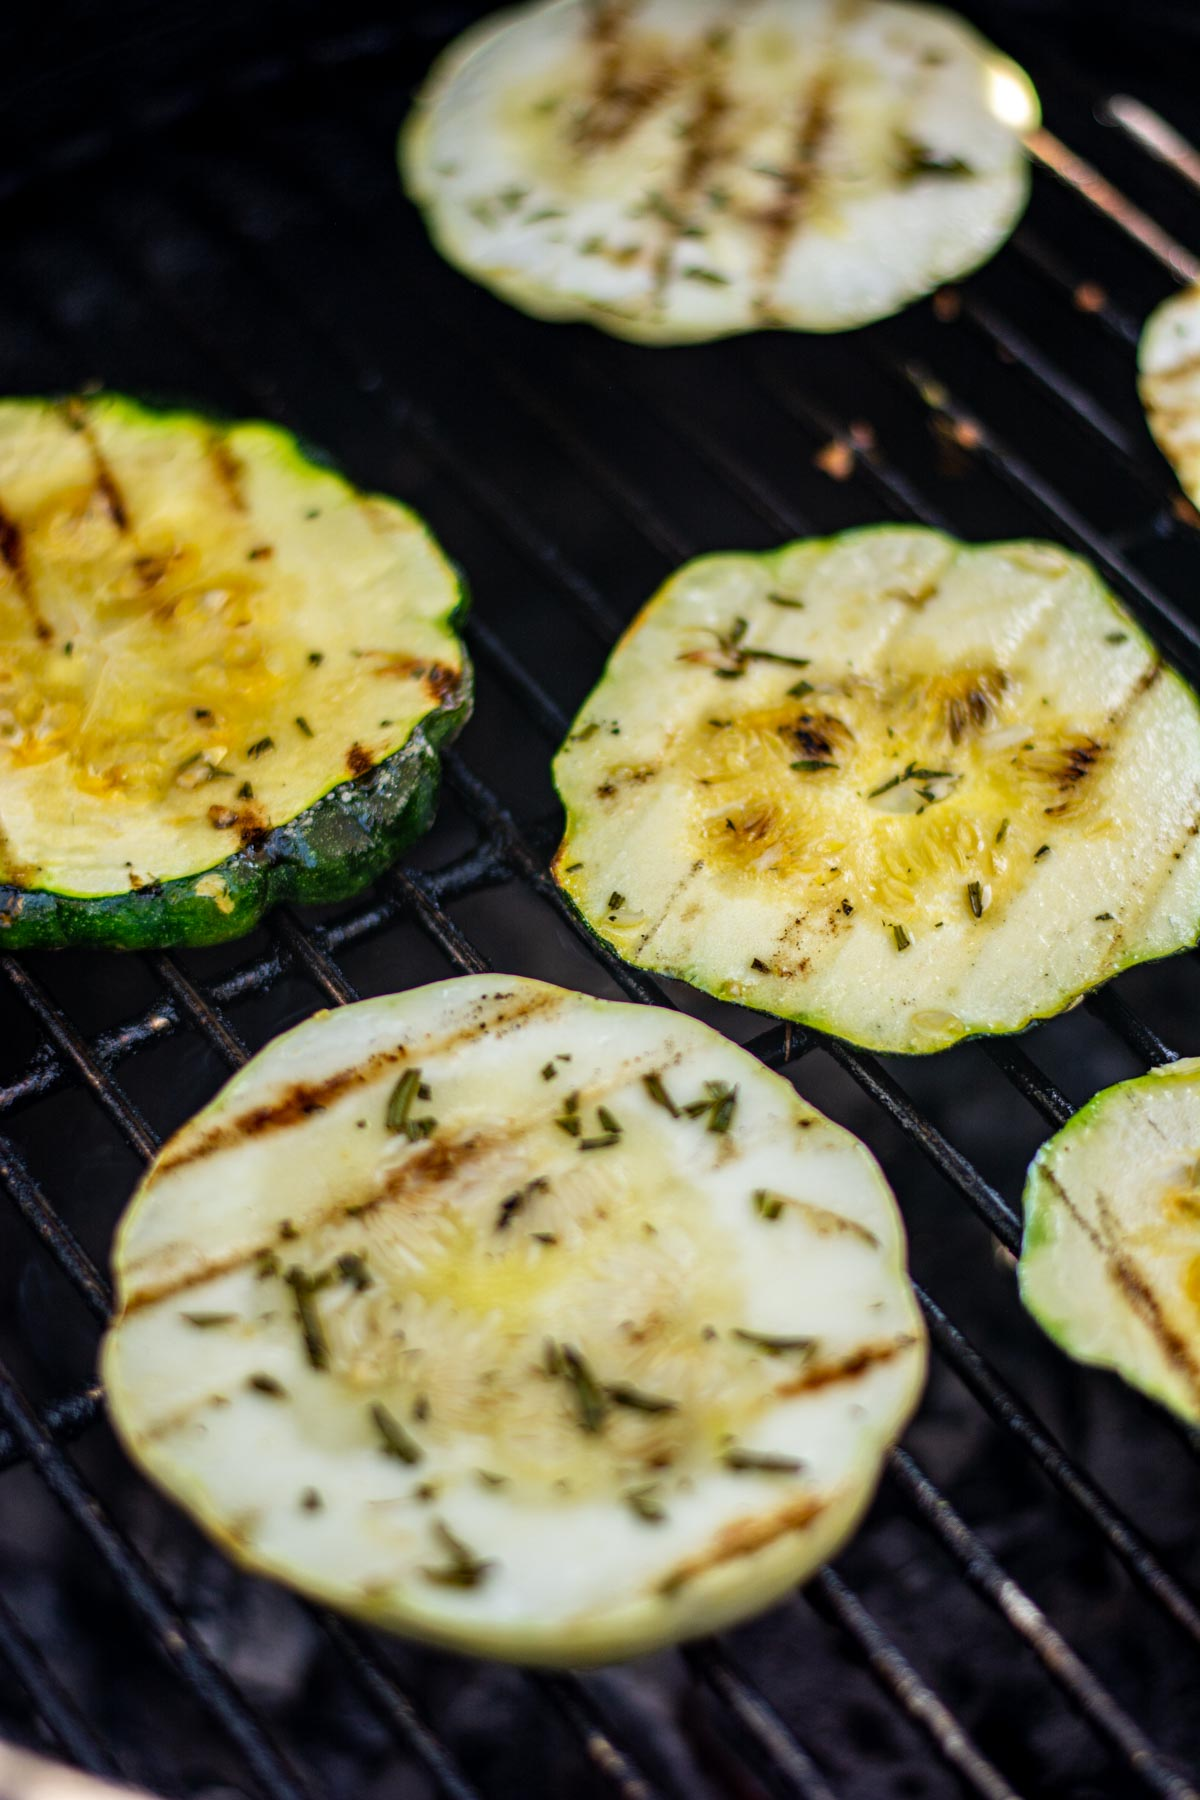 patty pan squash on the grill grate with a light brushing of an oil and herb mixture.